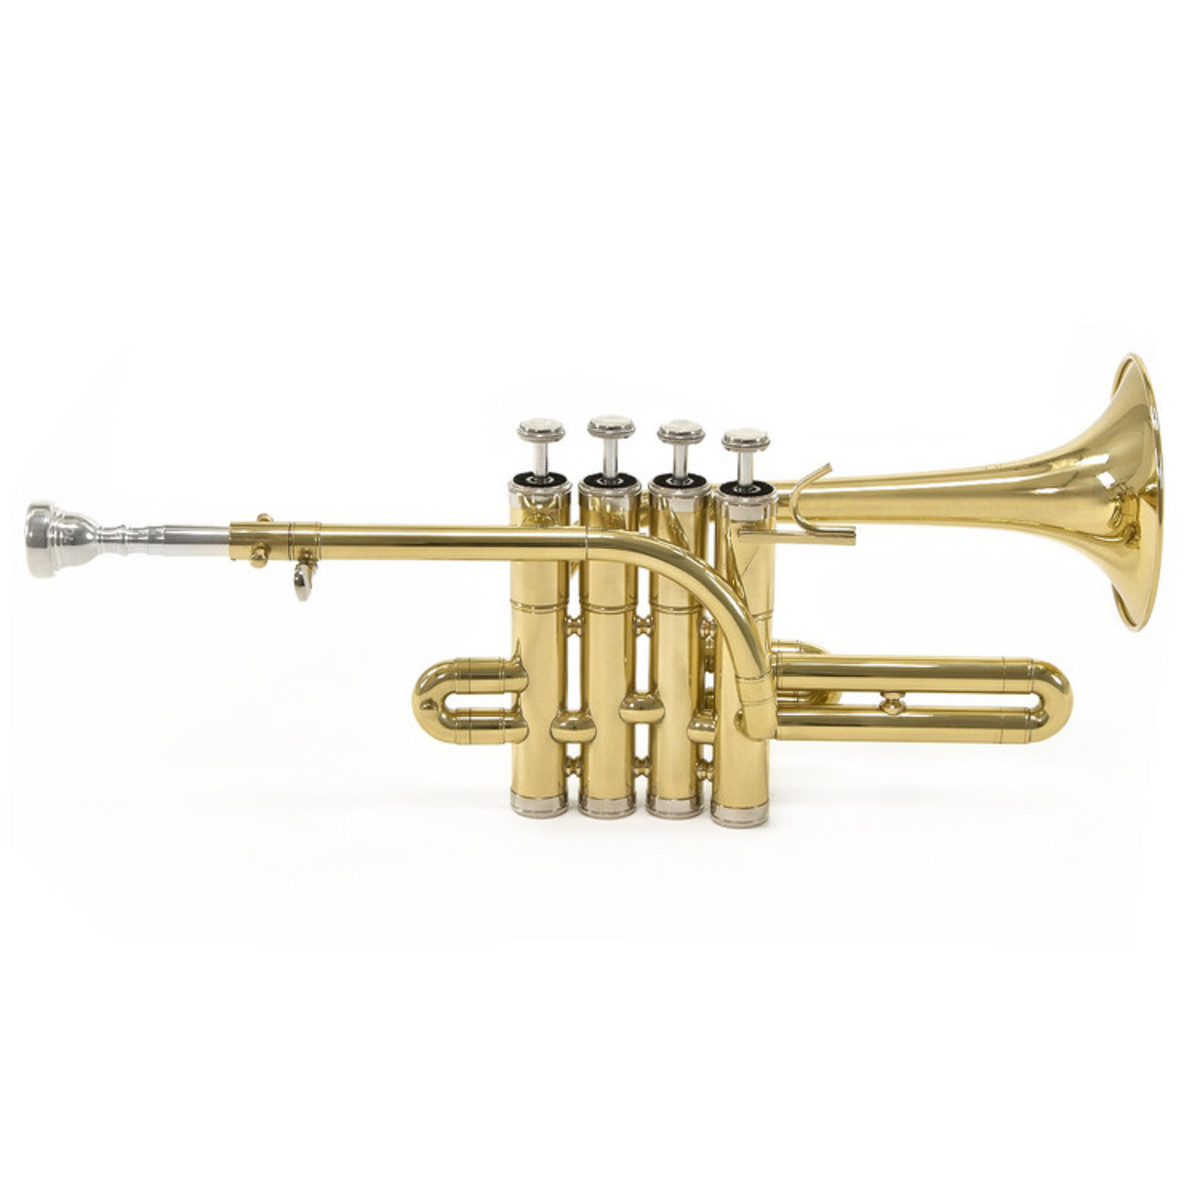 Beste Coppergate Piccolo Trumpet, By Gear4music - Nearly New   Gear4music NV-04